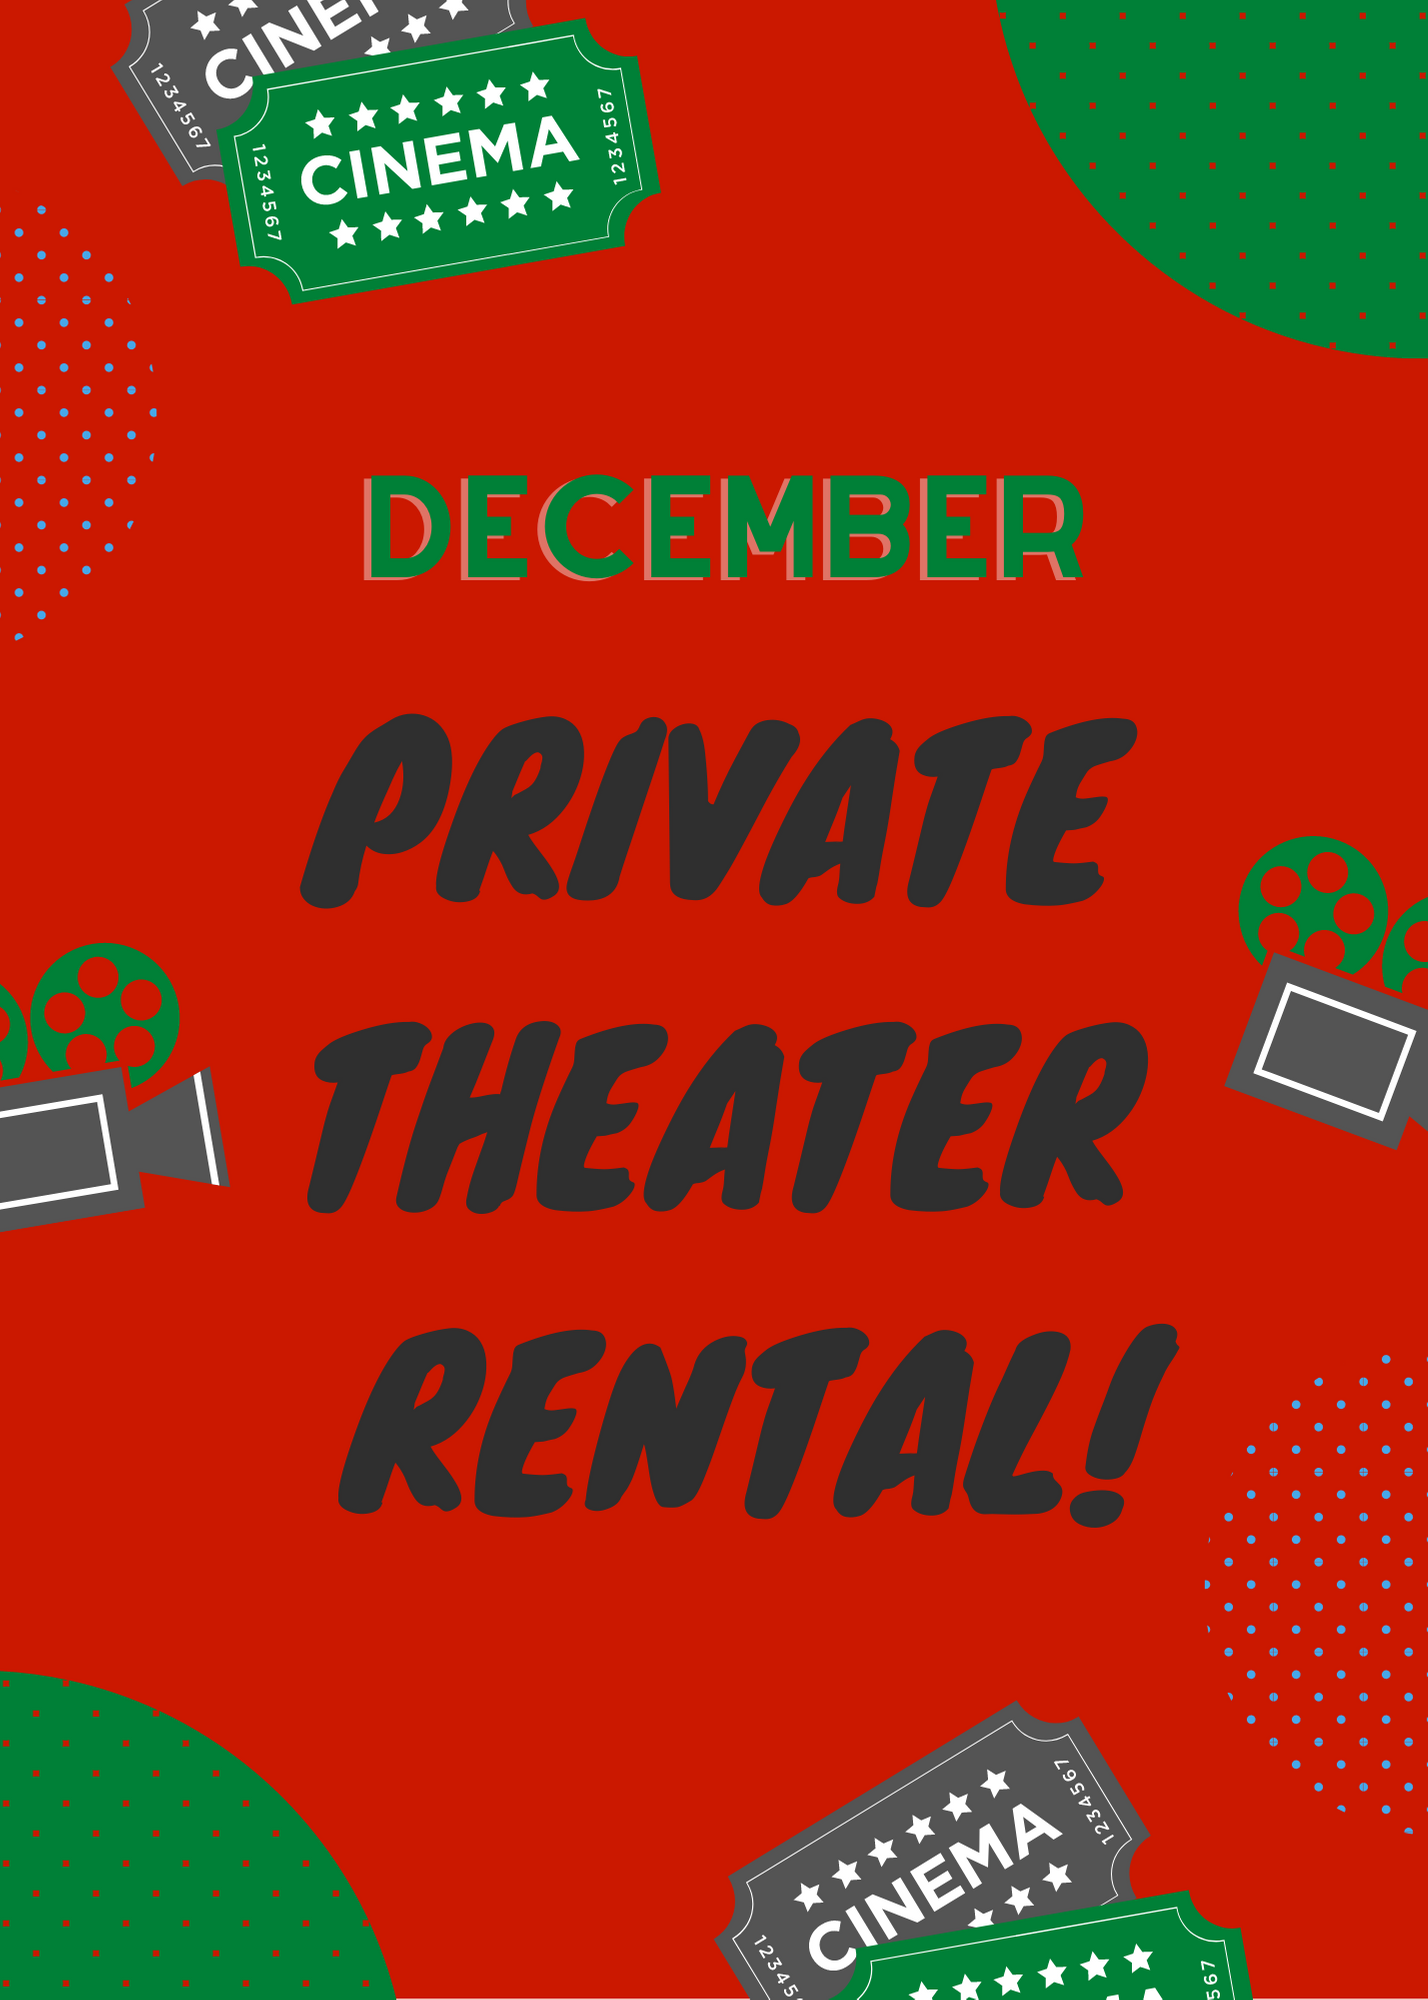 Poster for December Private Theater Rental